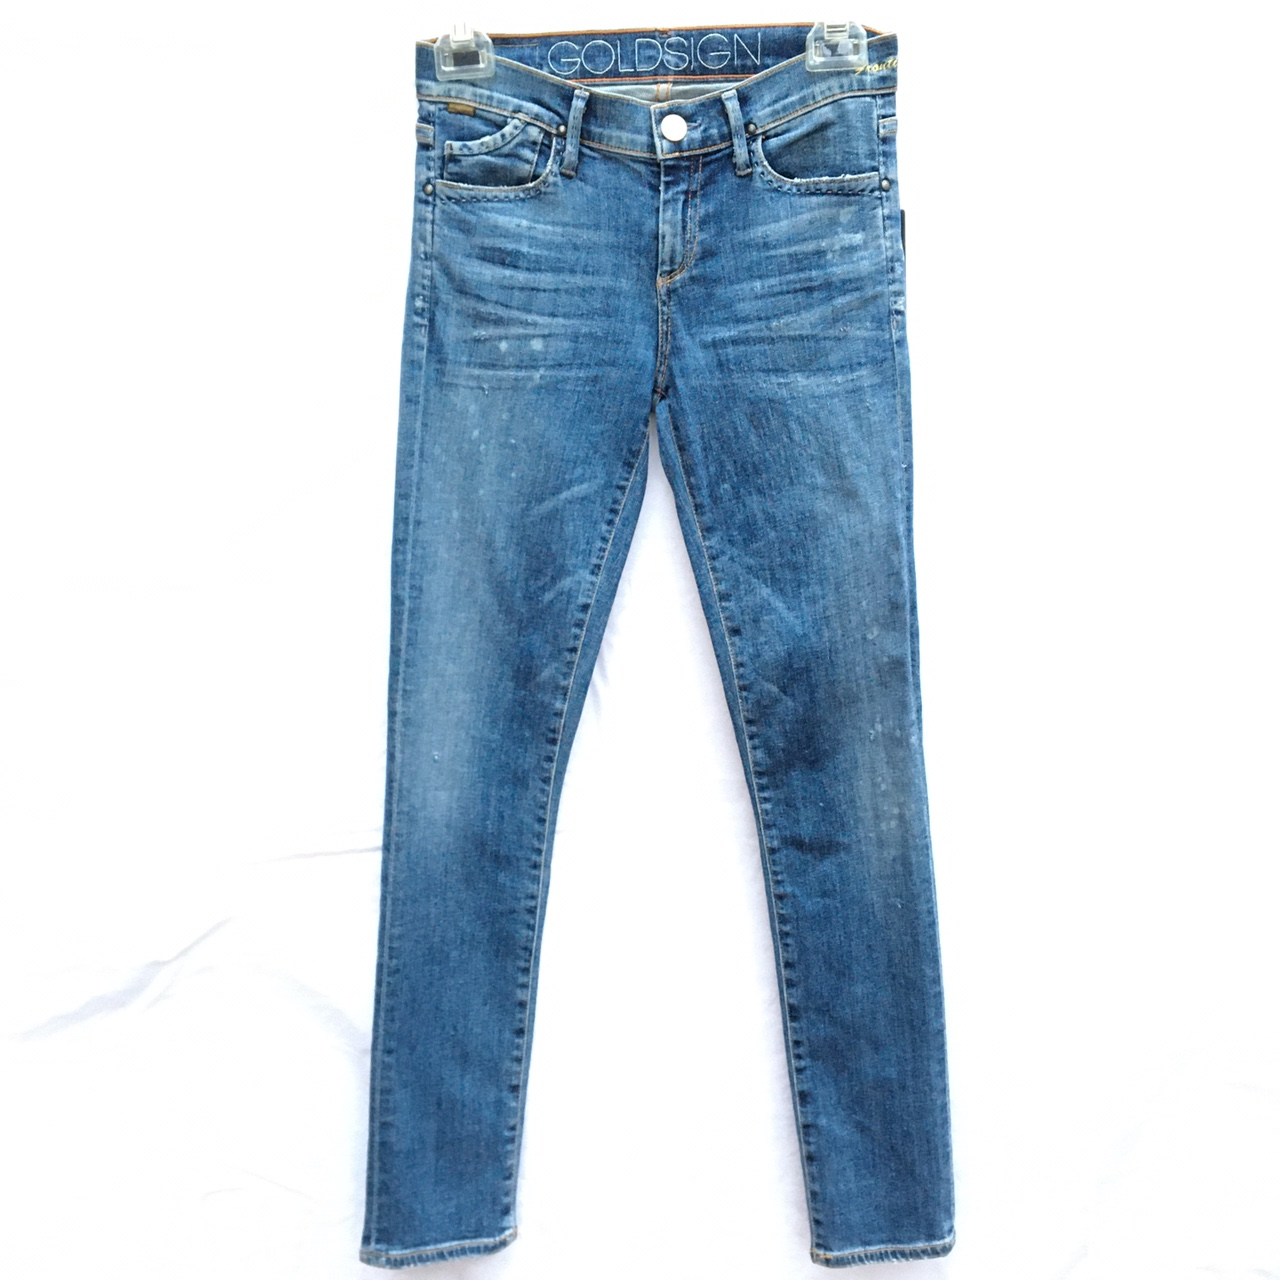 Product Image 1 - NWT Goldsign Frontier Skinny Jeans